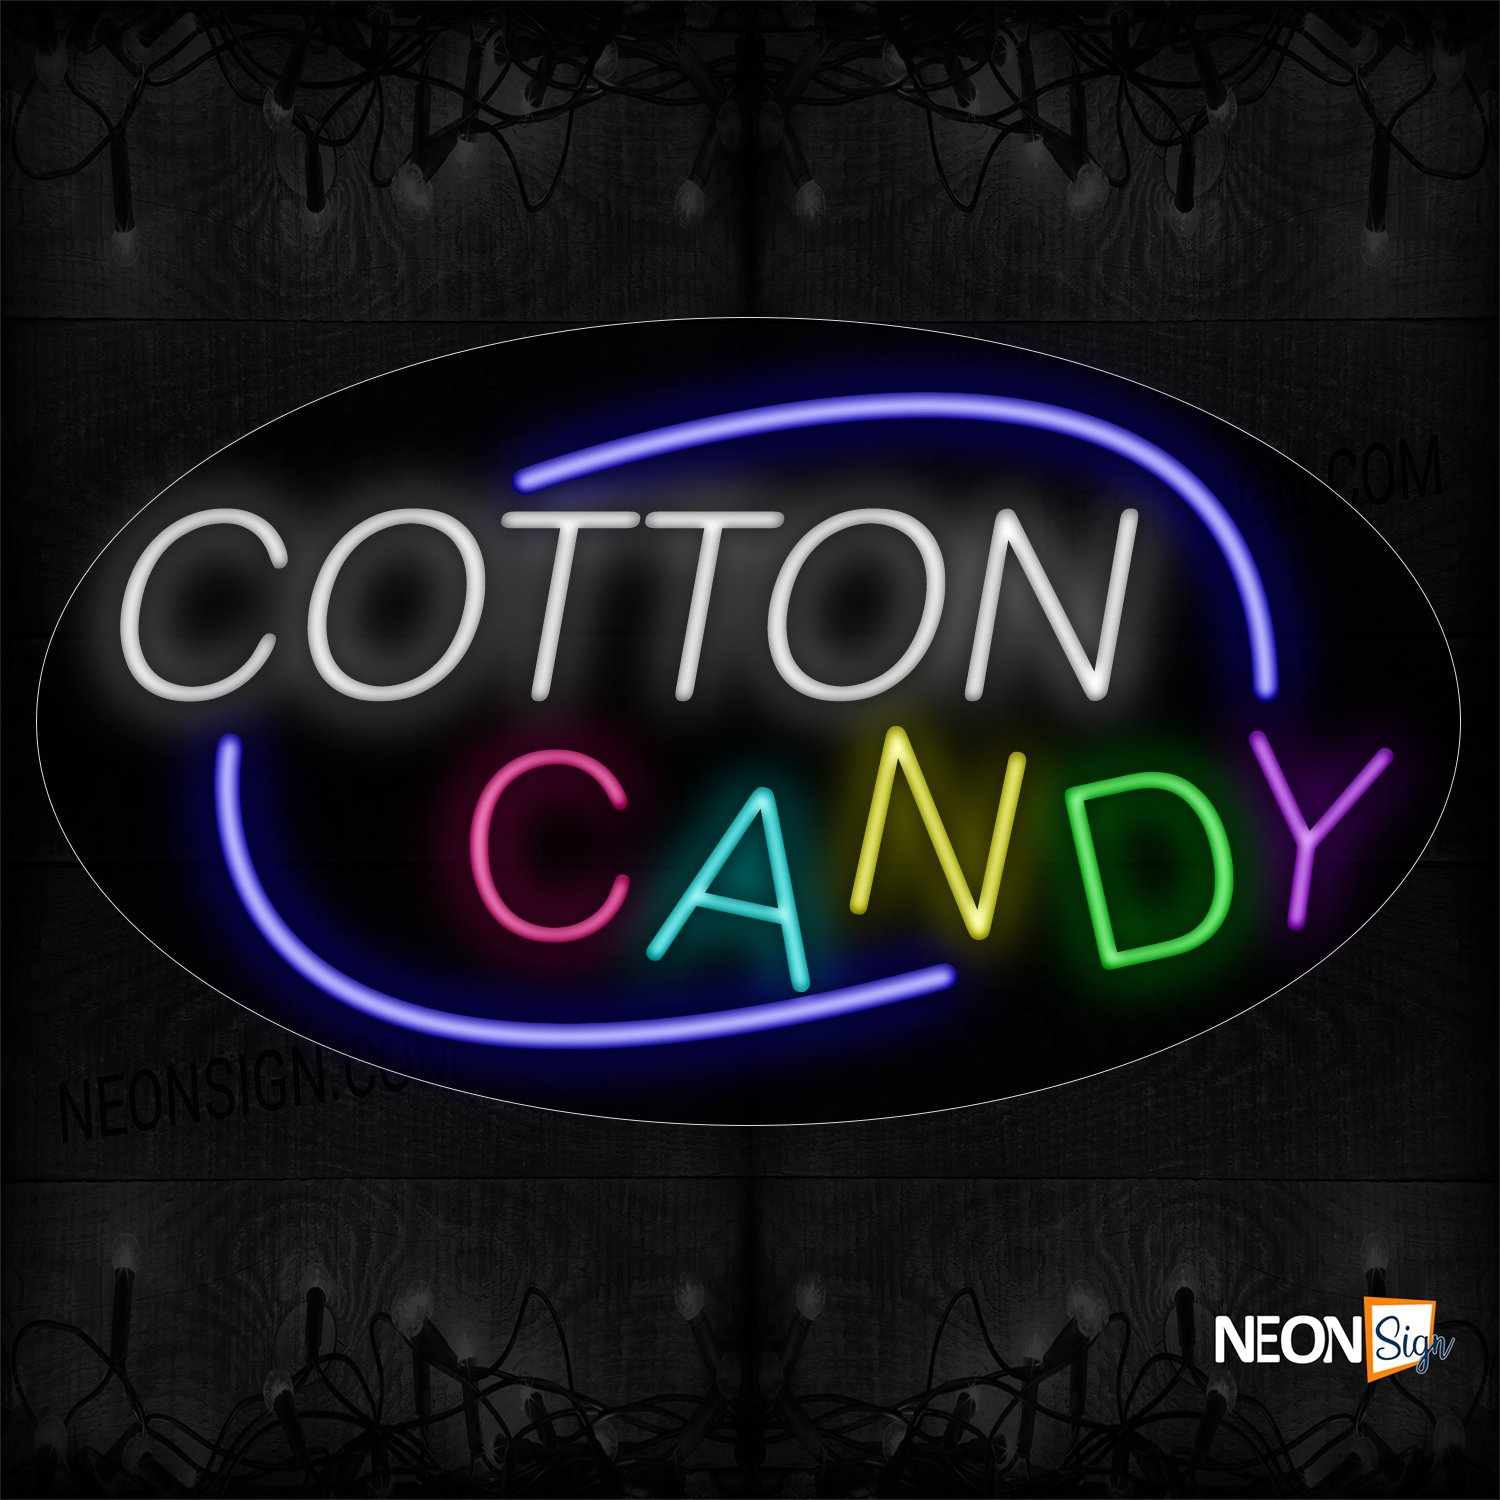 Image of 14440 Cotton Candy With Arc Border Neon Sign_17x30 Contoured Black Backing